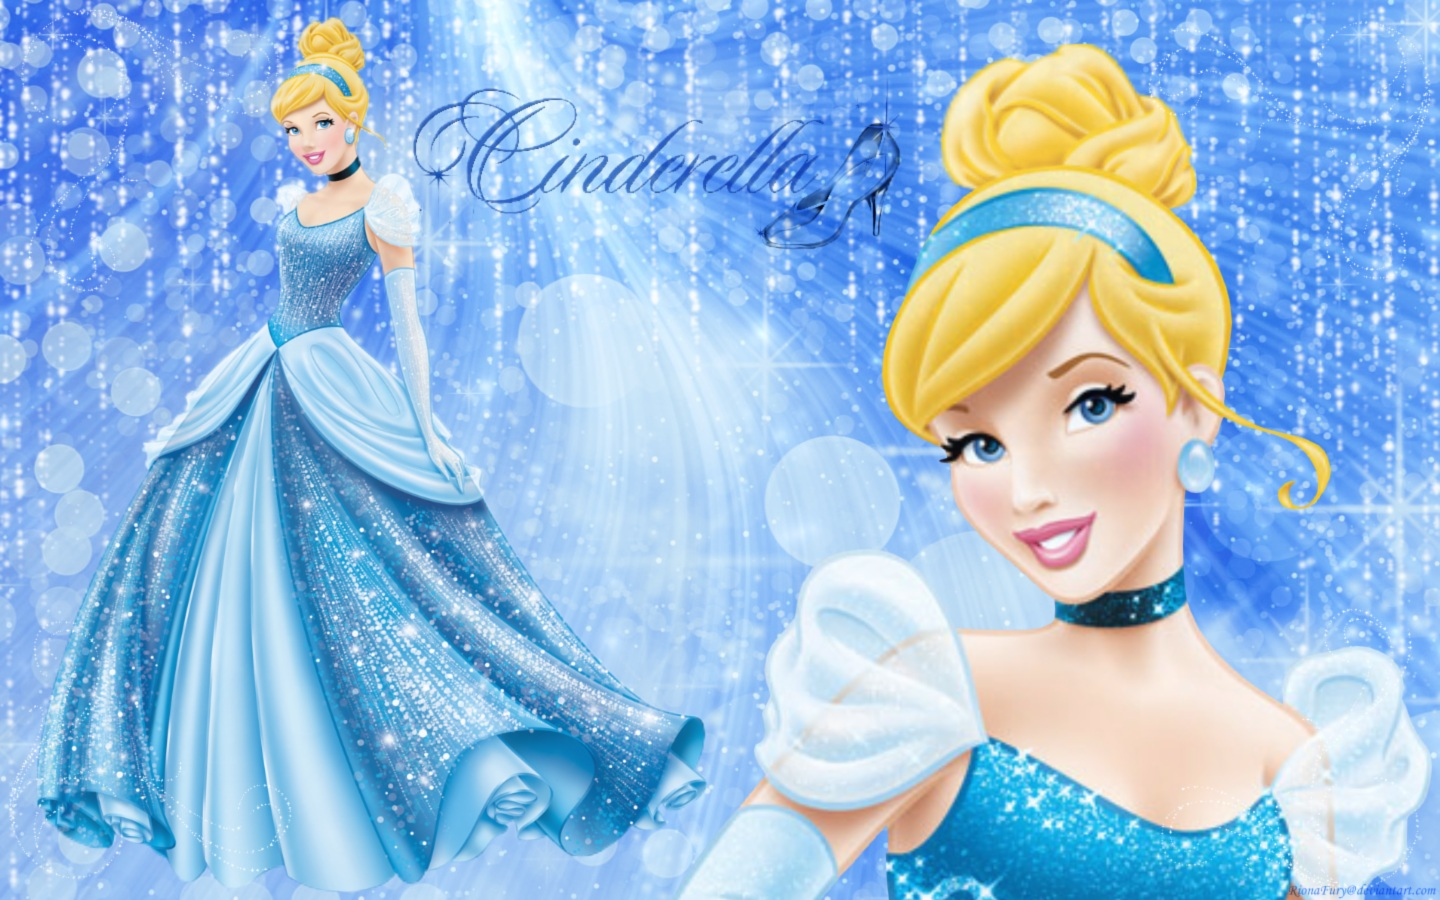 ... - Disney Hd Wallpaper Cinderella Background World Disney Hd Download